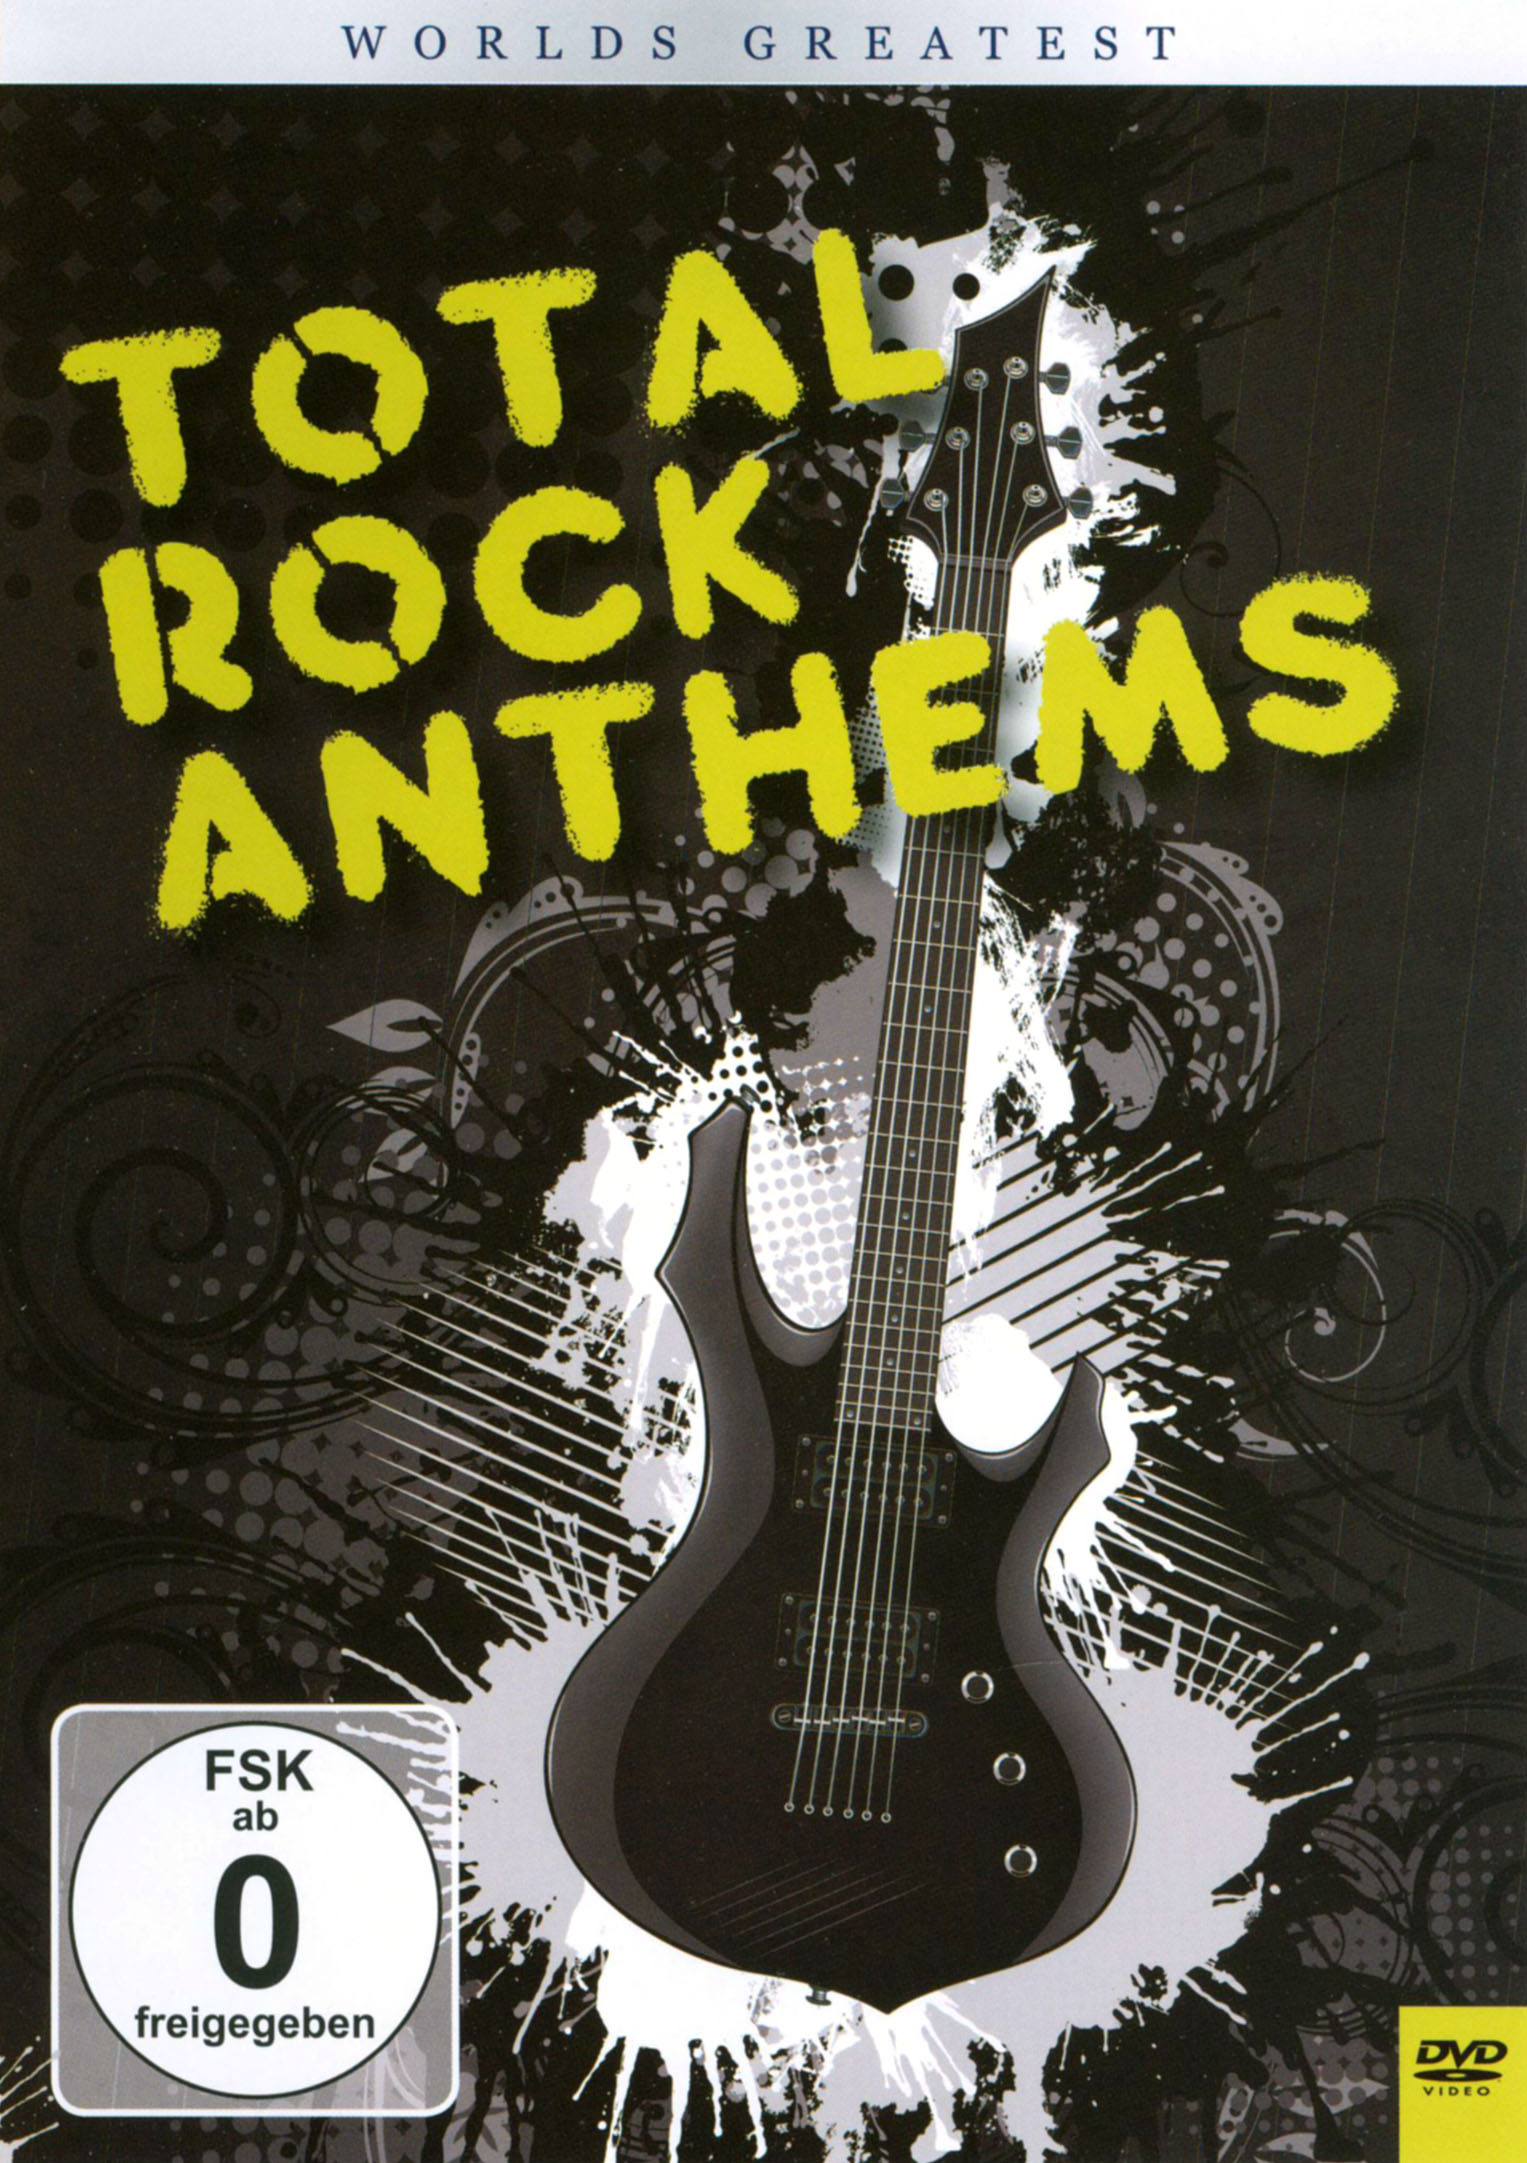 World's Greatest Total Rock Anthems